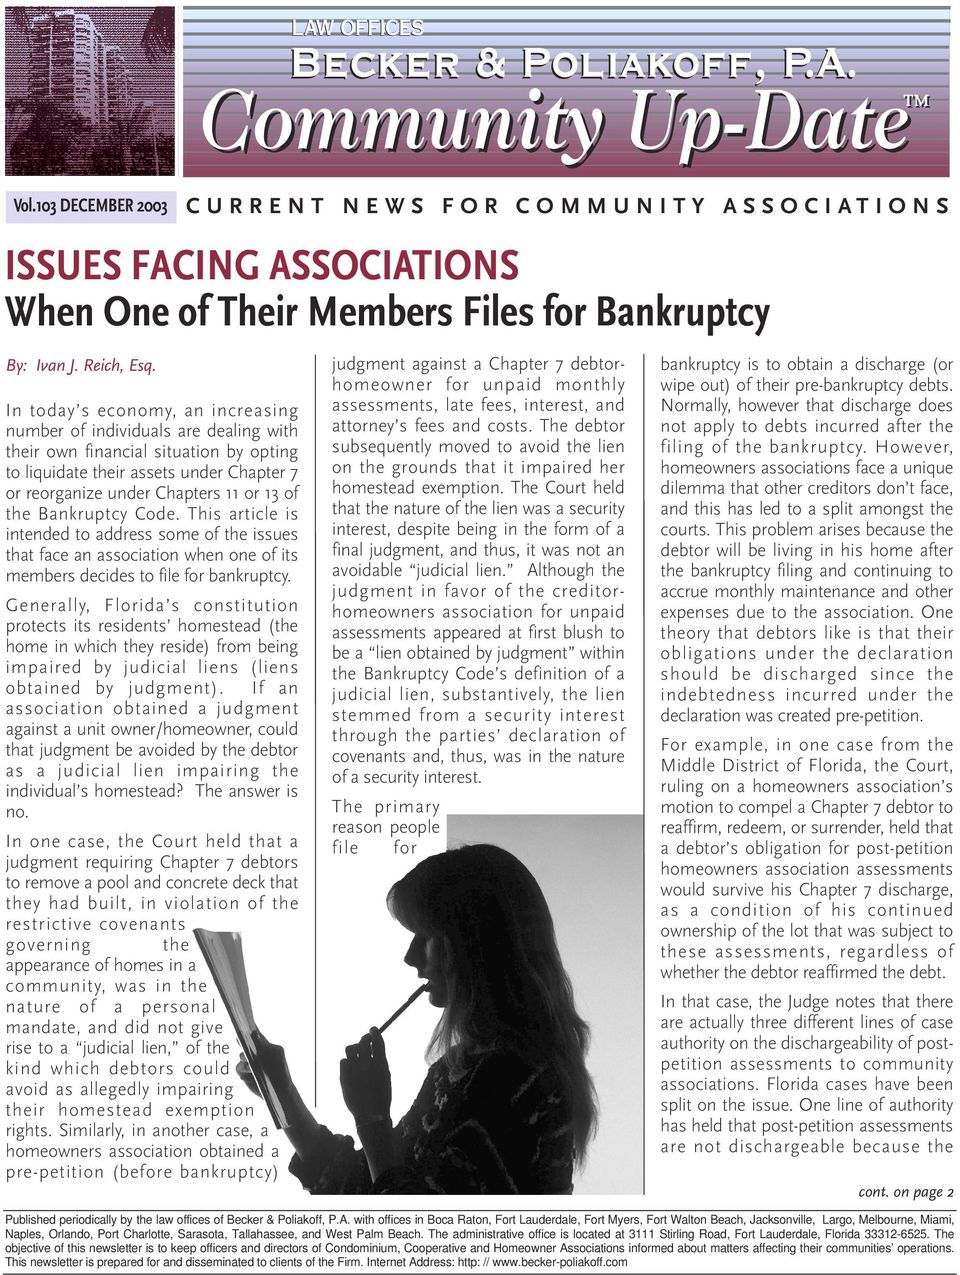 Bankruptcy Code. This article is intended to address some of the issues that face an association when one of its members decides to file for bankruptcy.